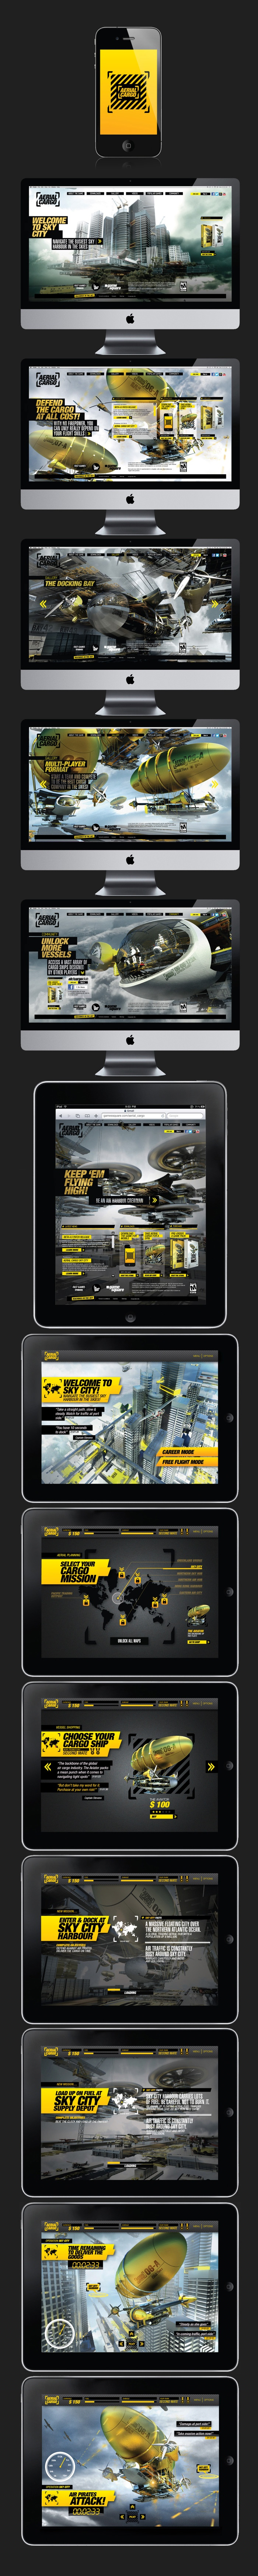 Aerial Cargo  -  Aerial Cargo is a limited release game that depicts an alternate world of cargo shipping, in the air! Take to the skies and pilot your very own cargo ship, navigate the busy air space at Sky City, defend against air pirates and get the goods delivered on time  -  by Leong Huang Zi, via Behance